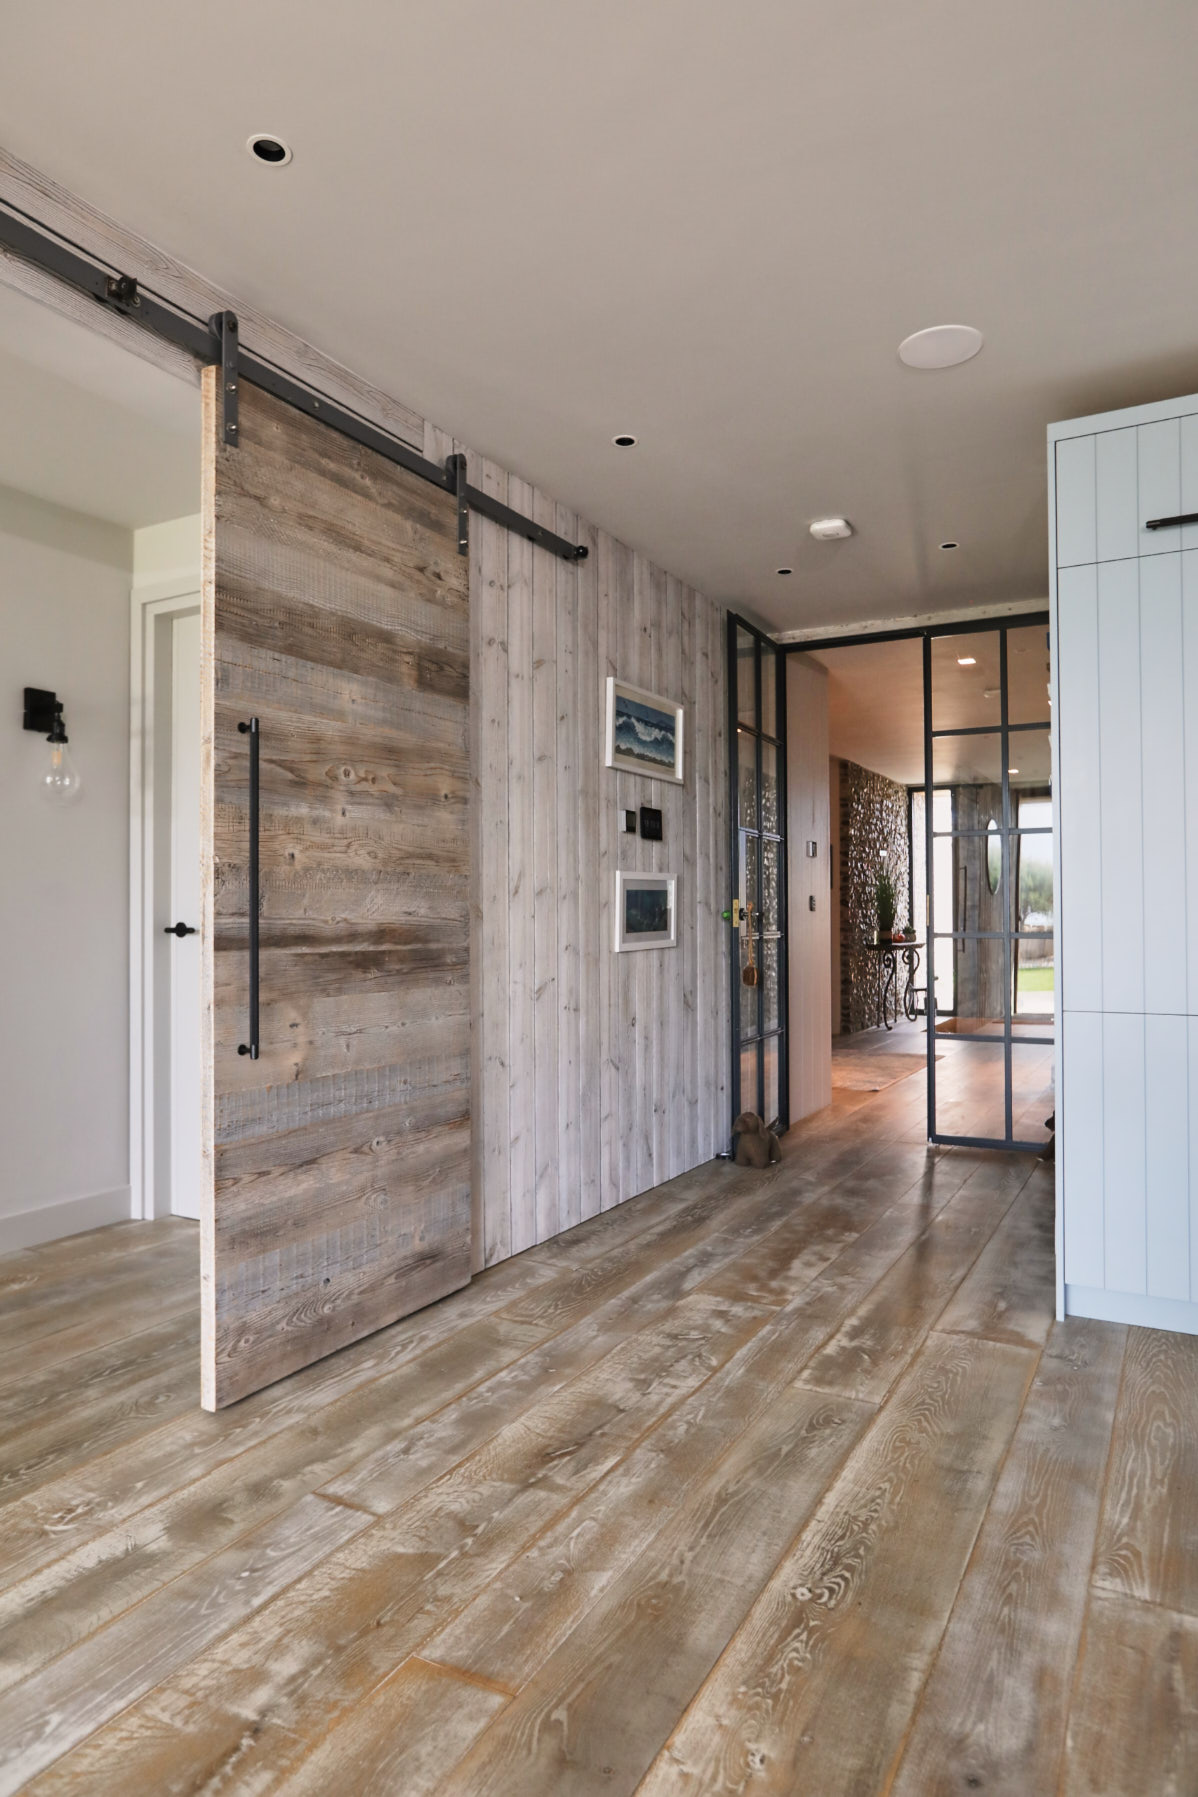 Open barn door with wooden flooring